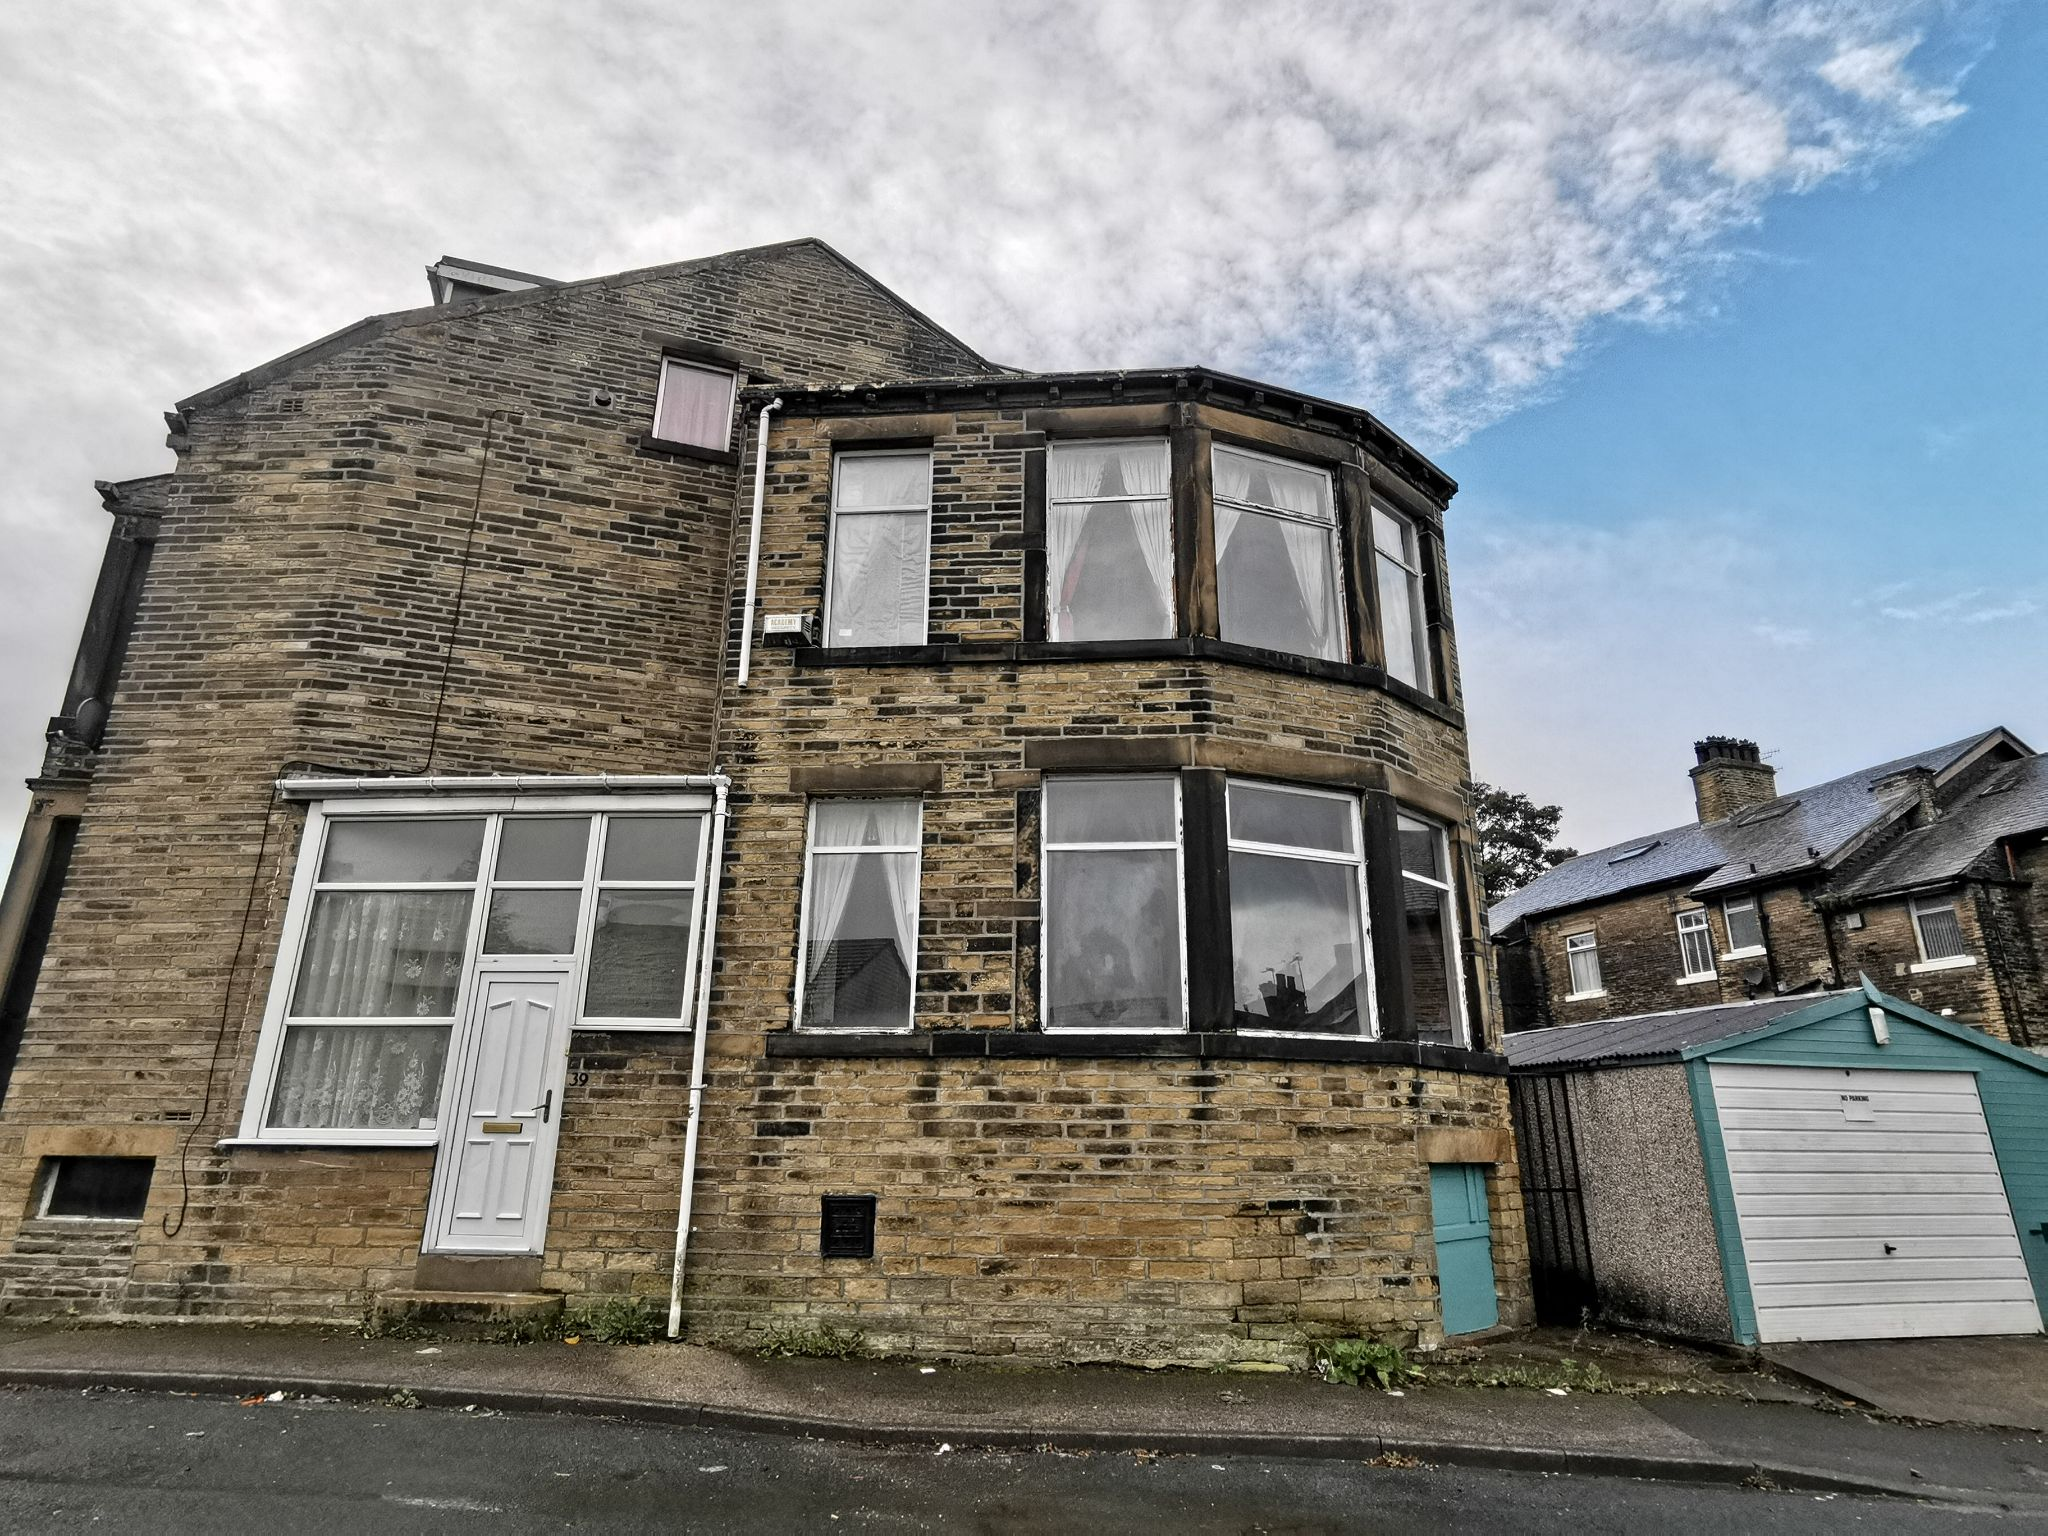 4 bedroom end terraced house in Bradford - Photograph 1.